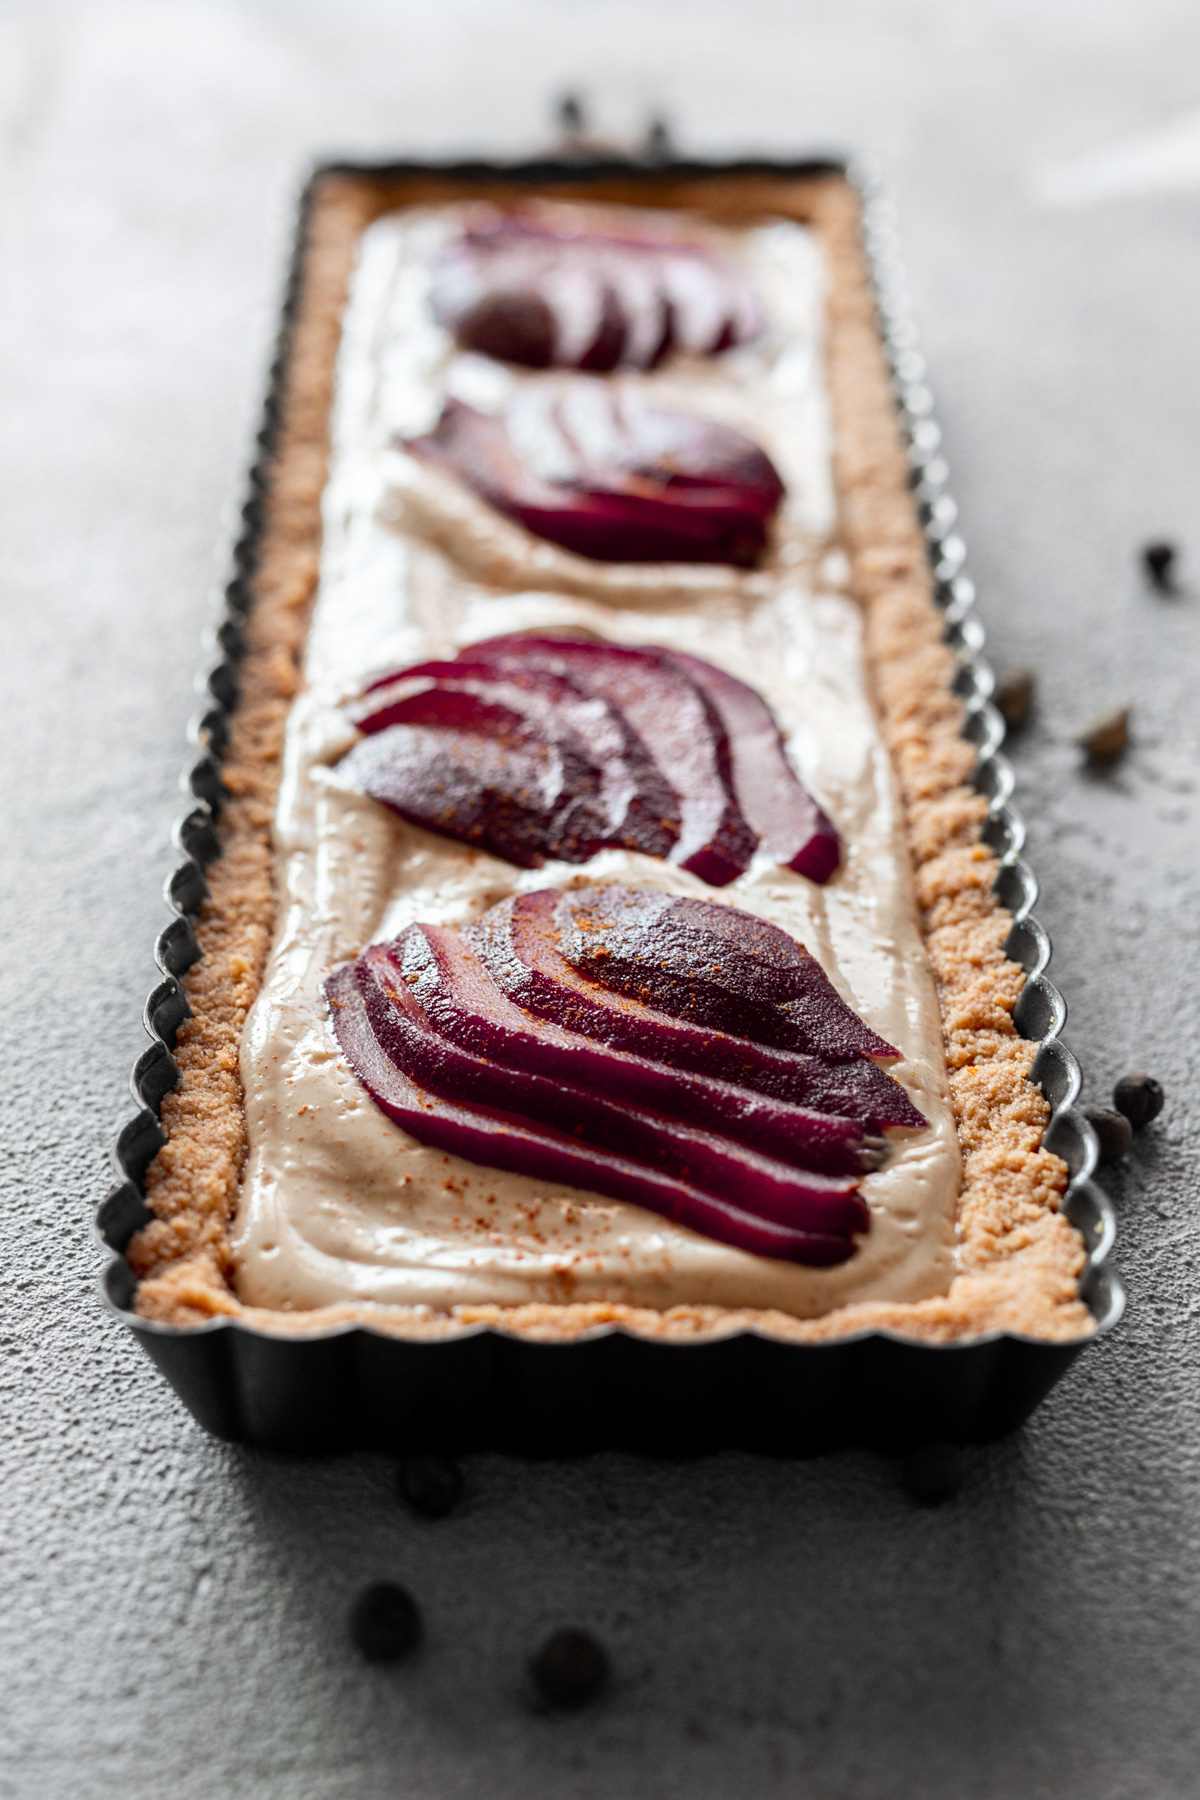 fall-spiced vegan tart with poached pears on top